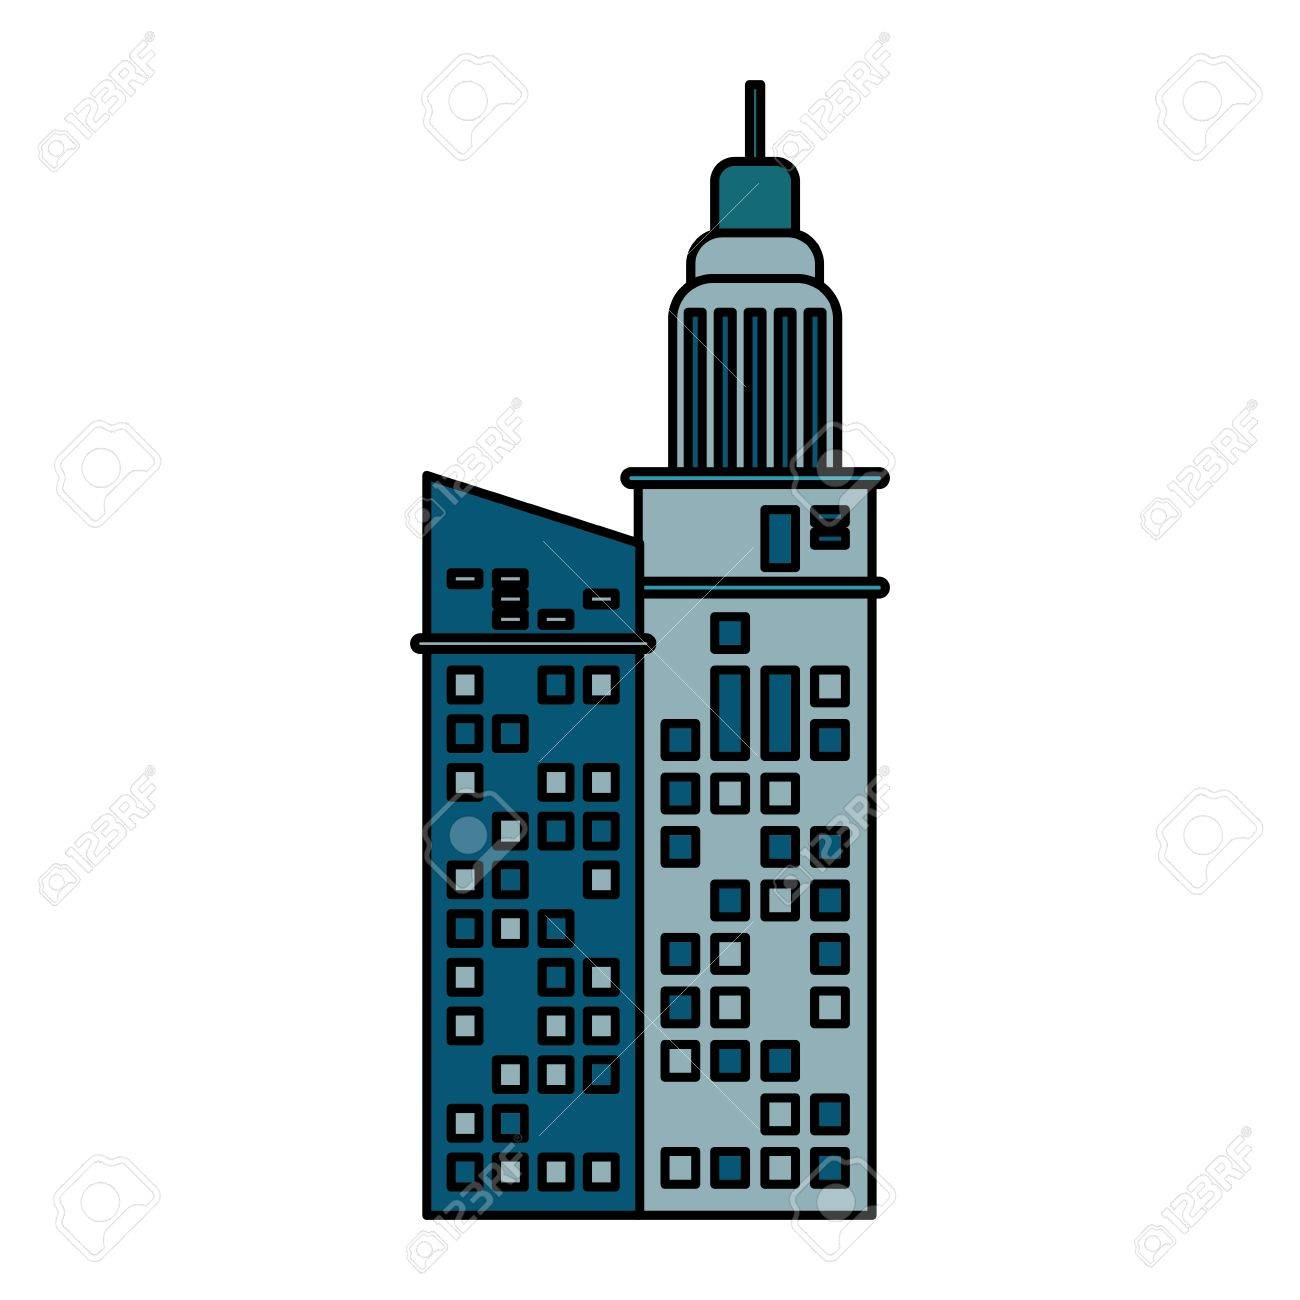 building architecture hotel skyscraper vector illustration eps rh 123rf com singapore skyscraper vector skyscraper vector free